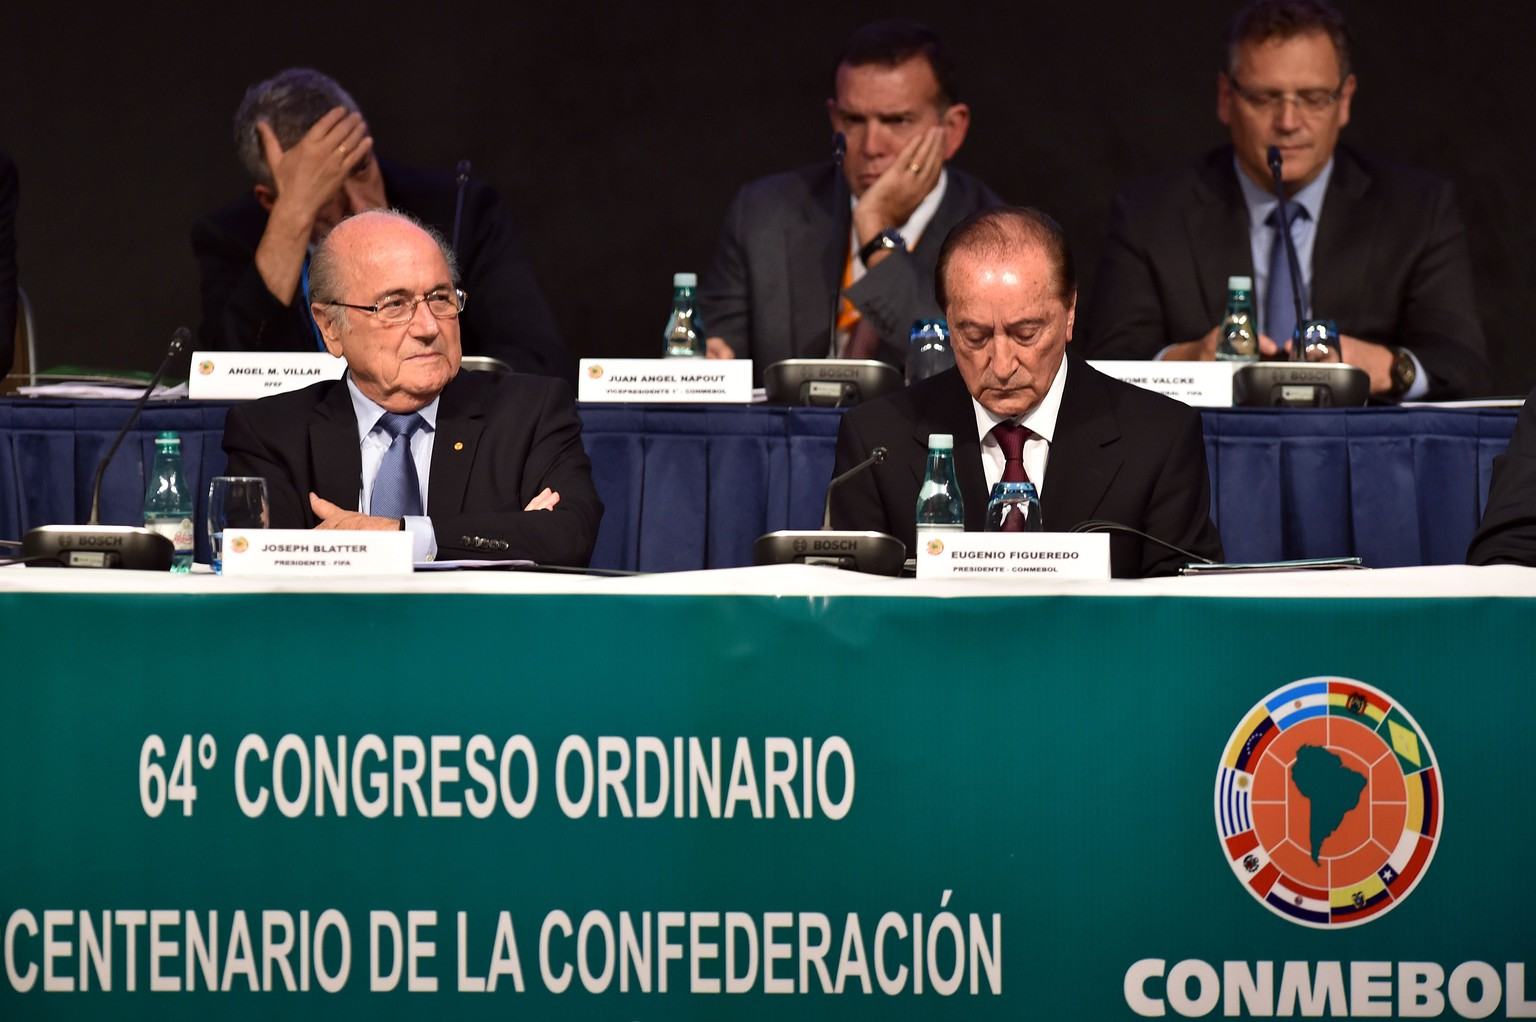 FIFA's President Joseph Blatter (L) and Conmebol's president Eugenio Figueredo Aguerre (R) attend the 64th Ordinary Congress of Conmebol in Sao Paulo, Brazil on June 9, 2014.  AFP PHOTO / NELSON ALMEIDA